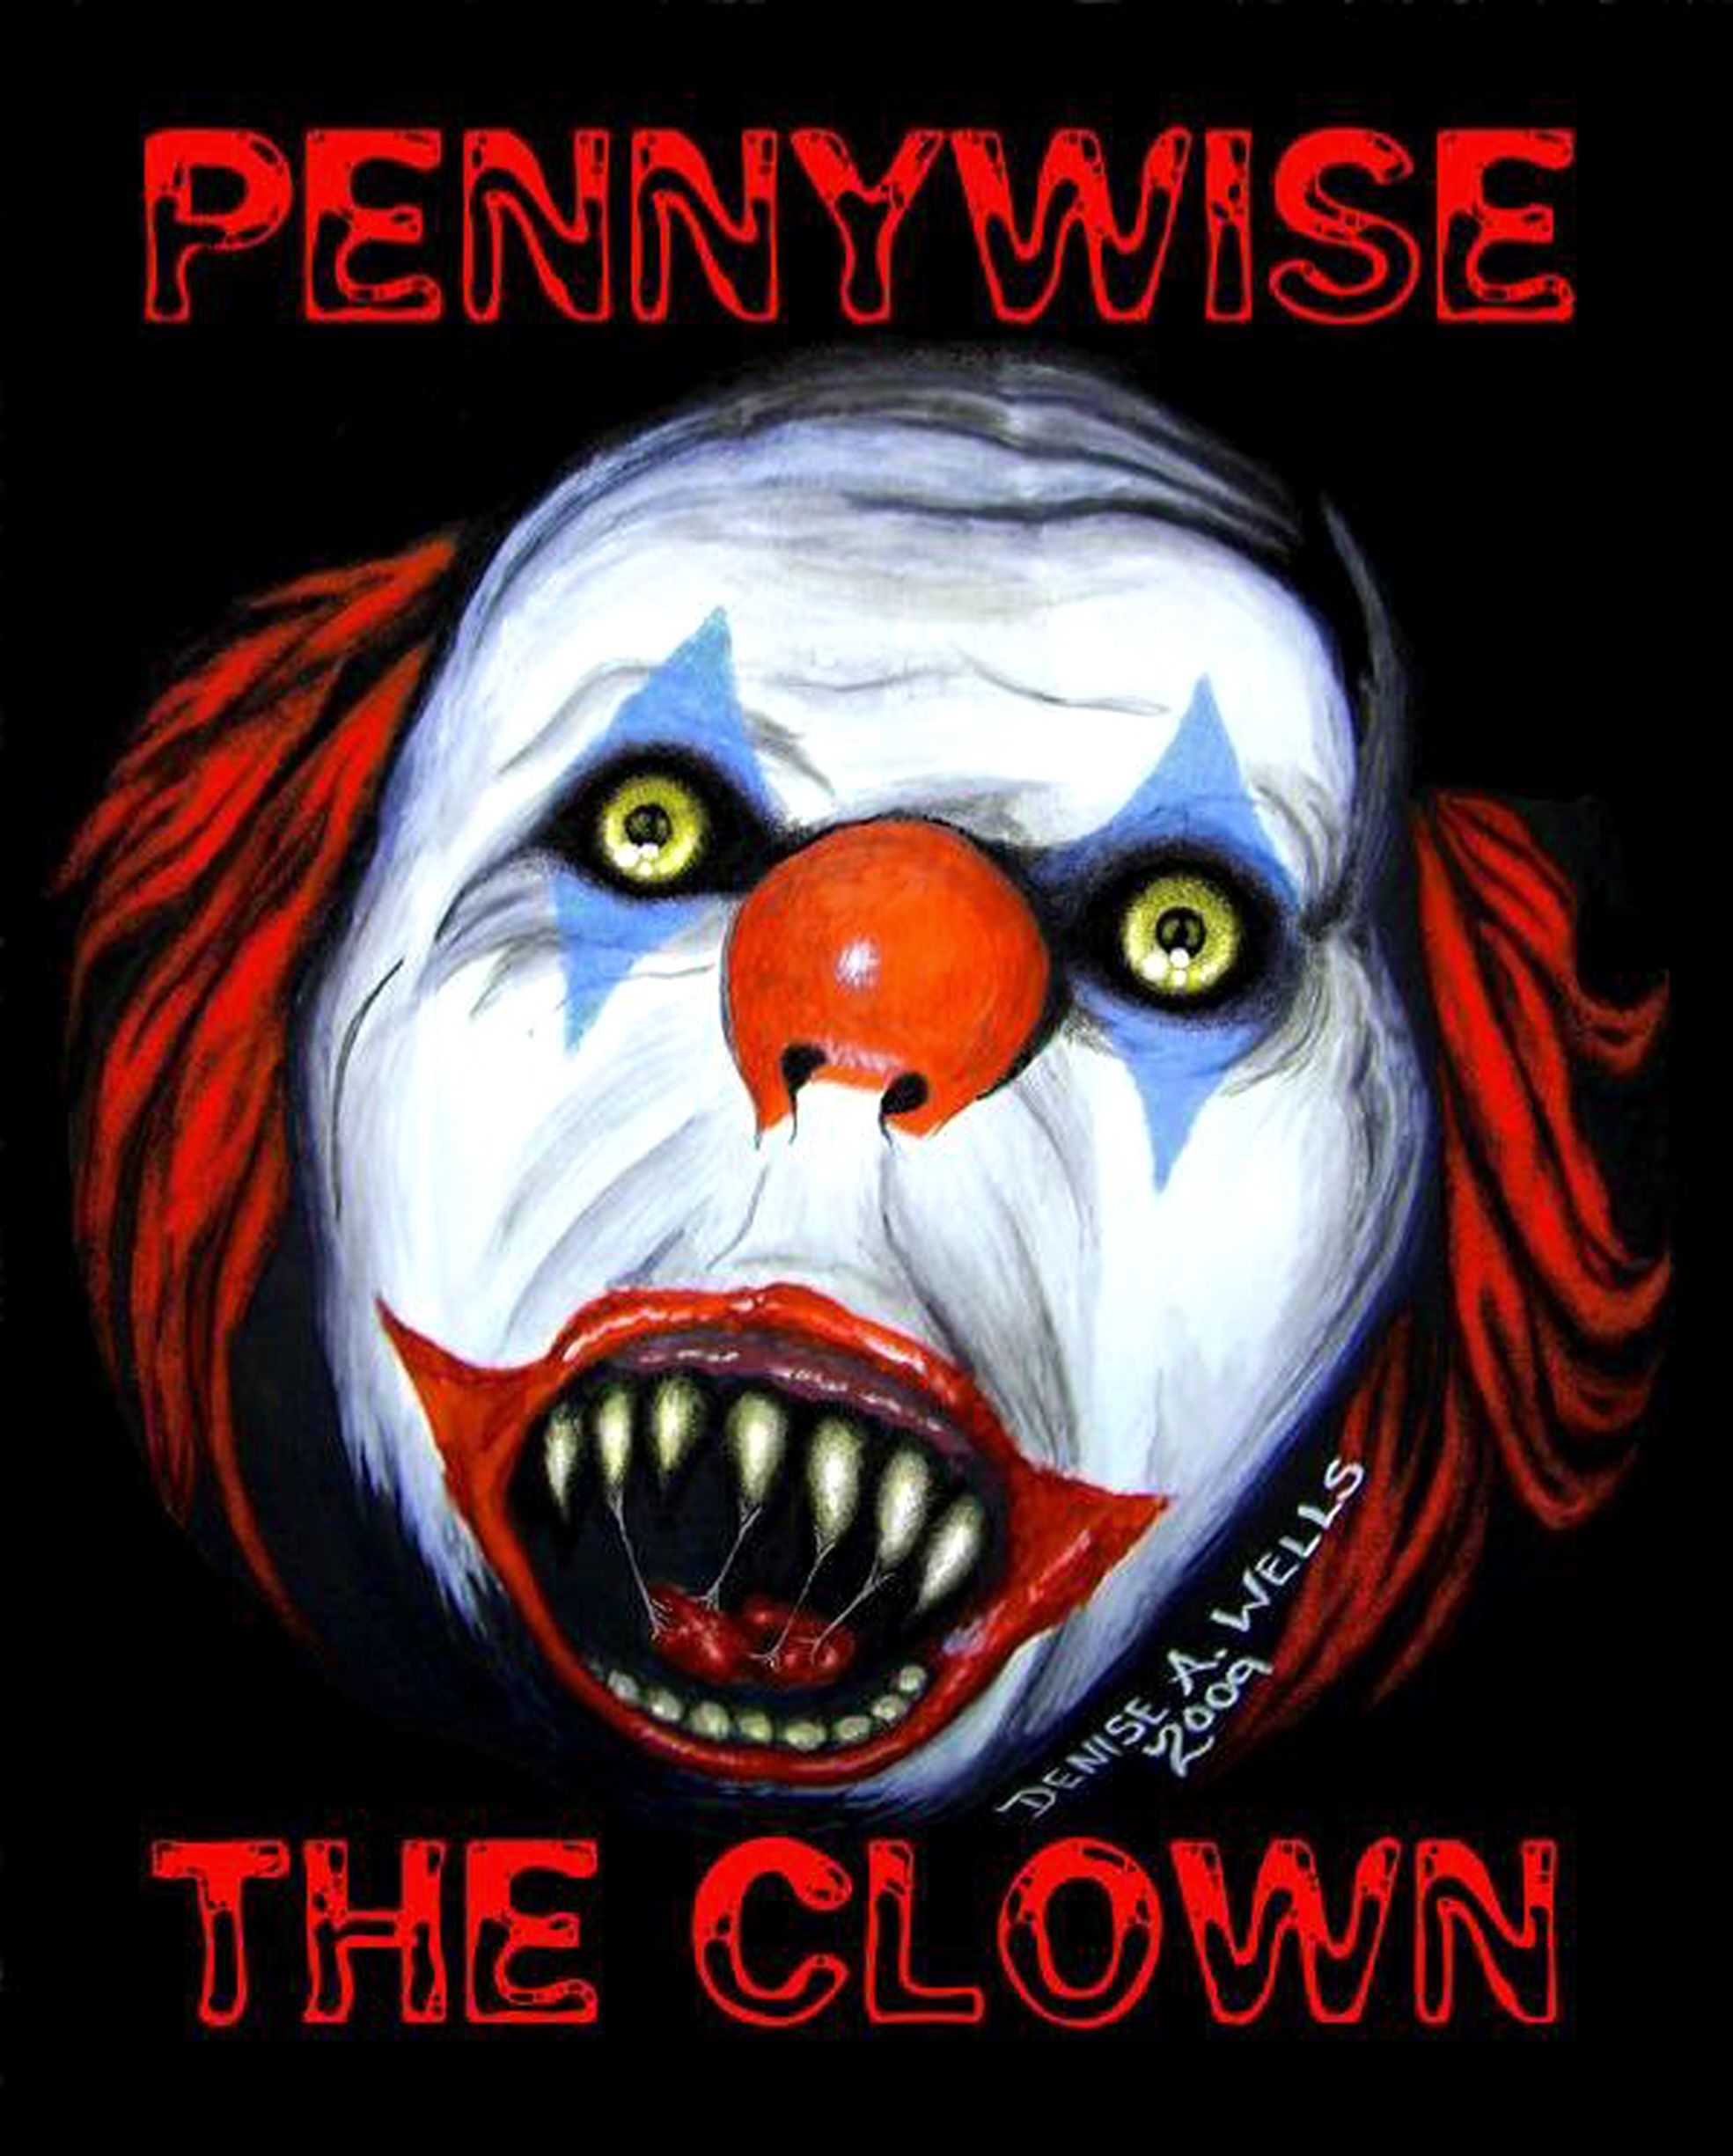 Scary Pumpkin Painting Pennywise The Dancing Clown From The Horror Movie It By Stephen